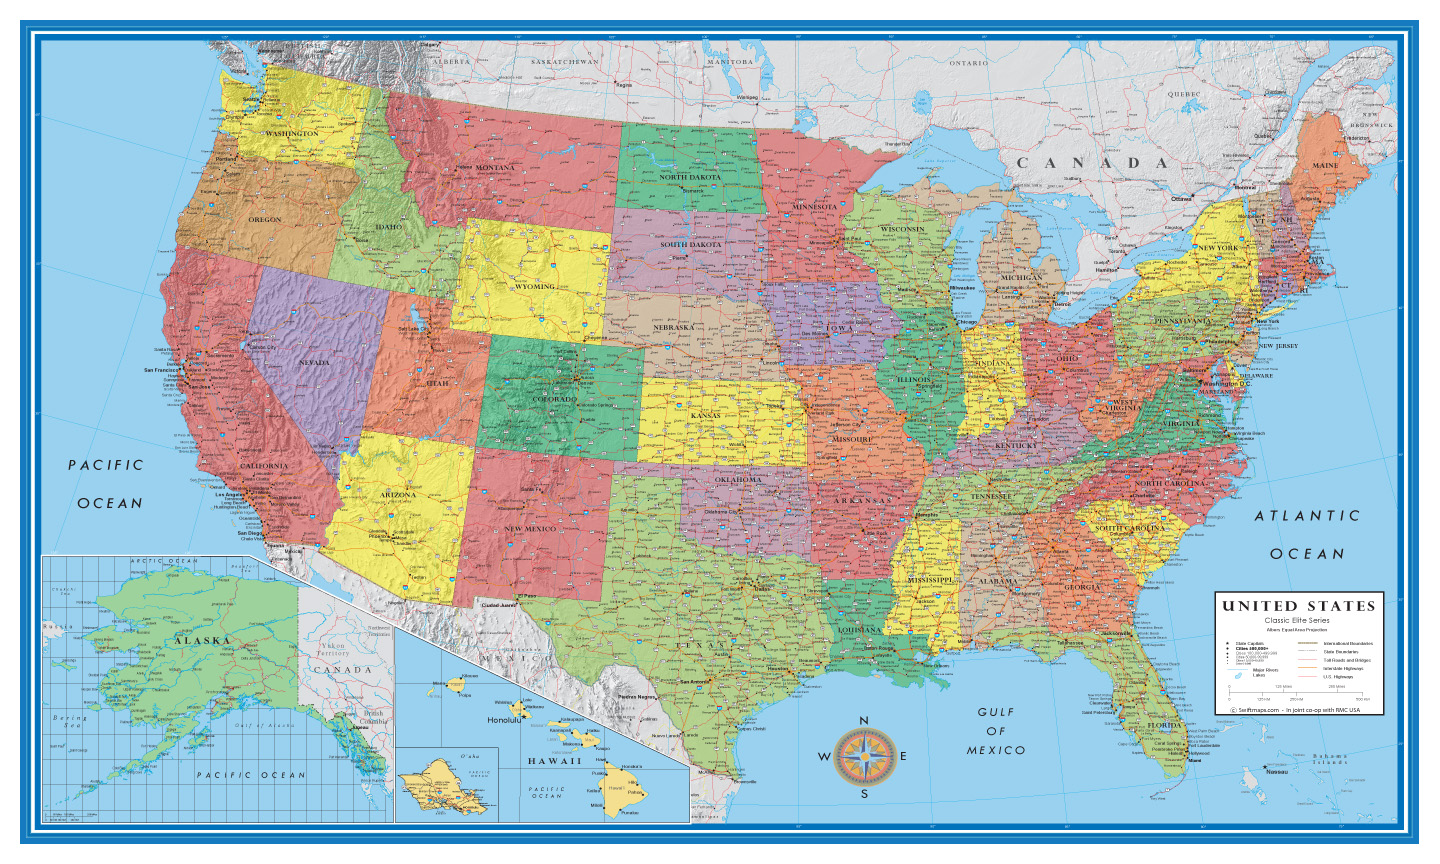 USA Wall Maps Archives - SWIFTMAPS.com